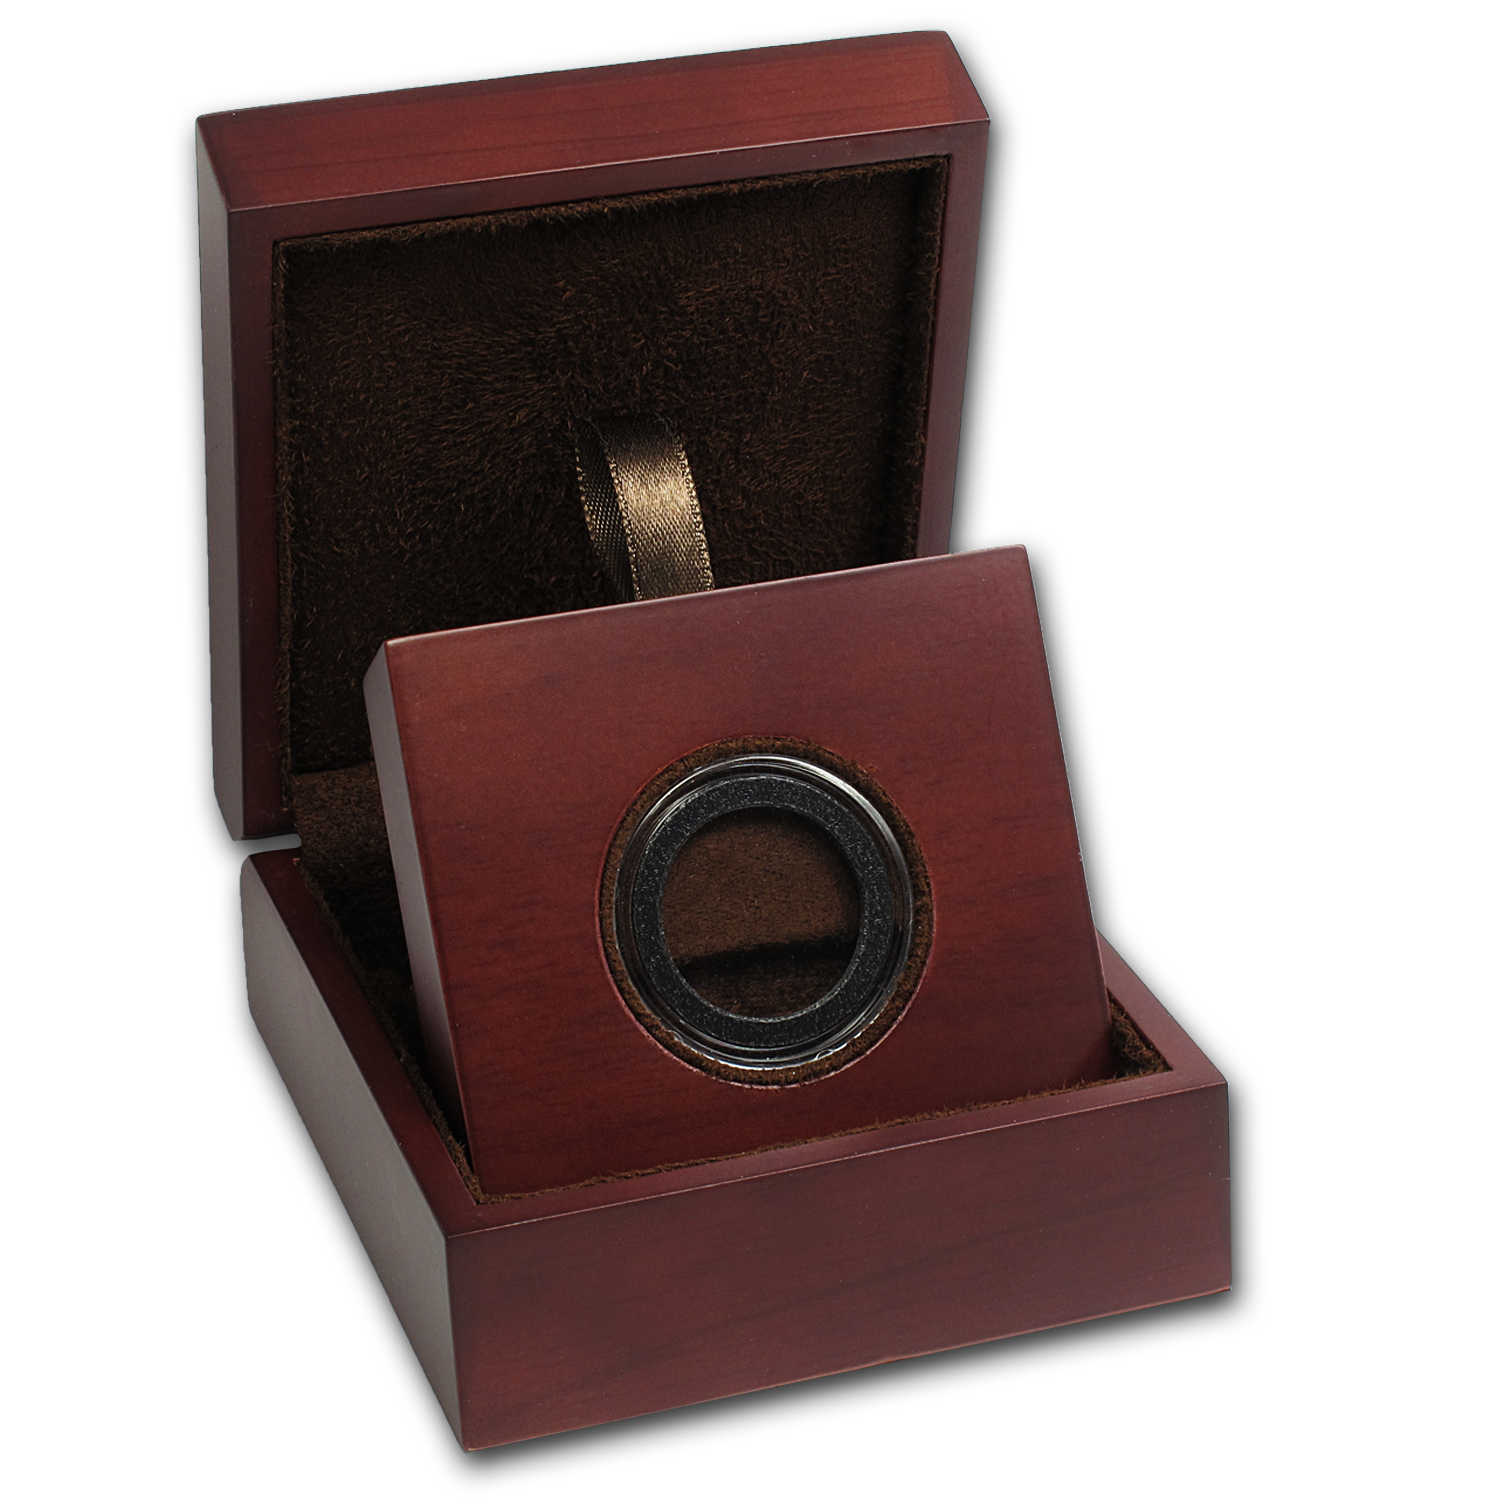 APMEX Wood Gift Box - Includes 25 mm Air-Tite Holder with Gasket